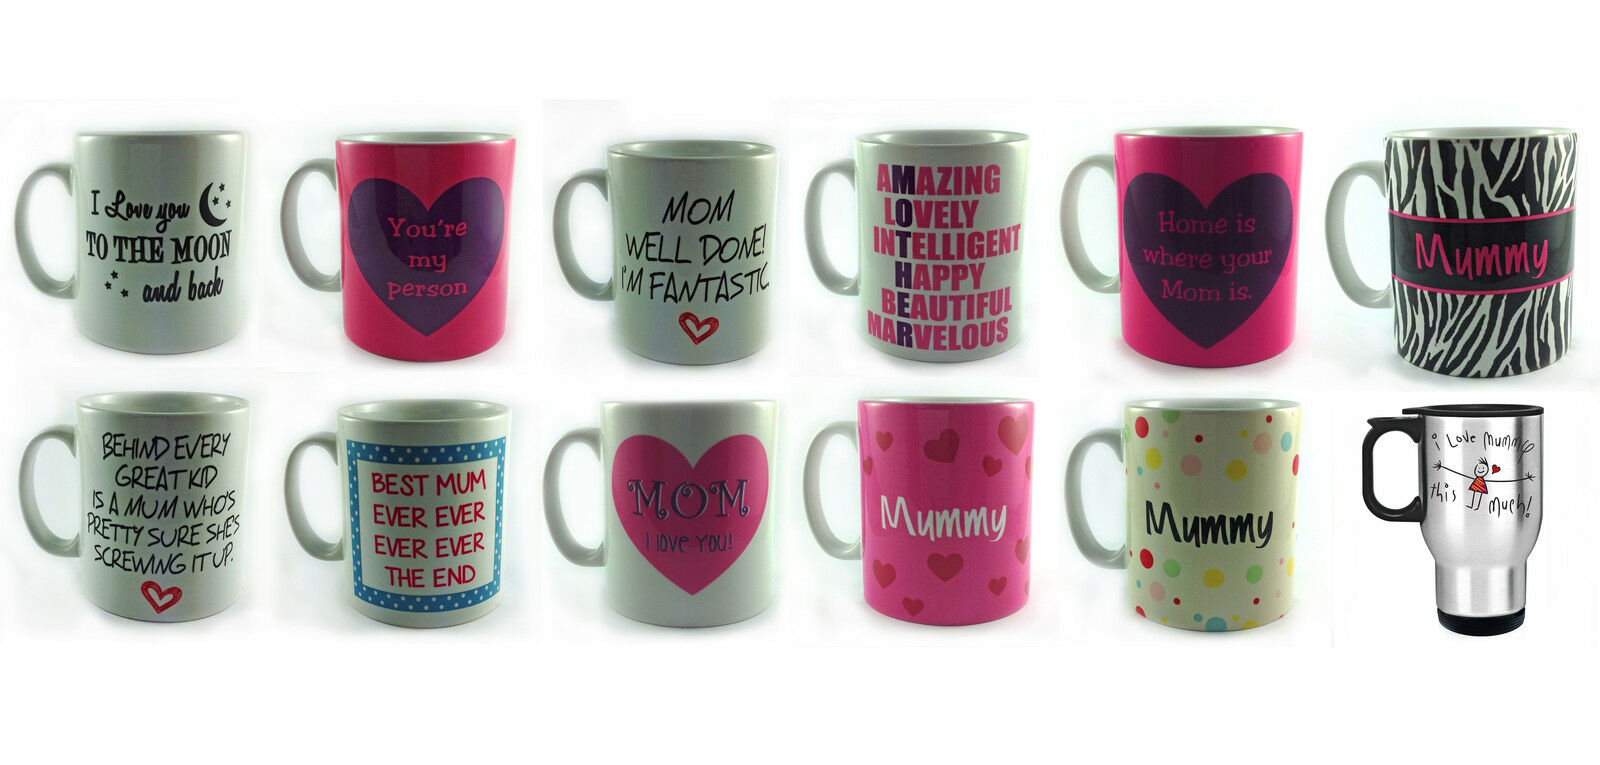 the wonderful mug company